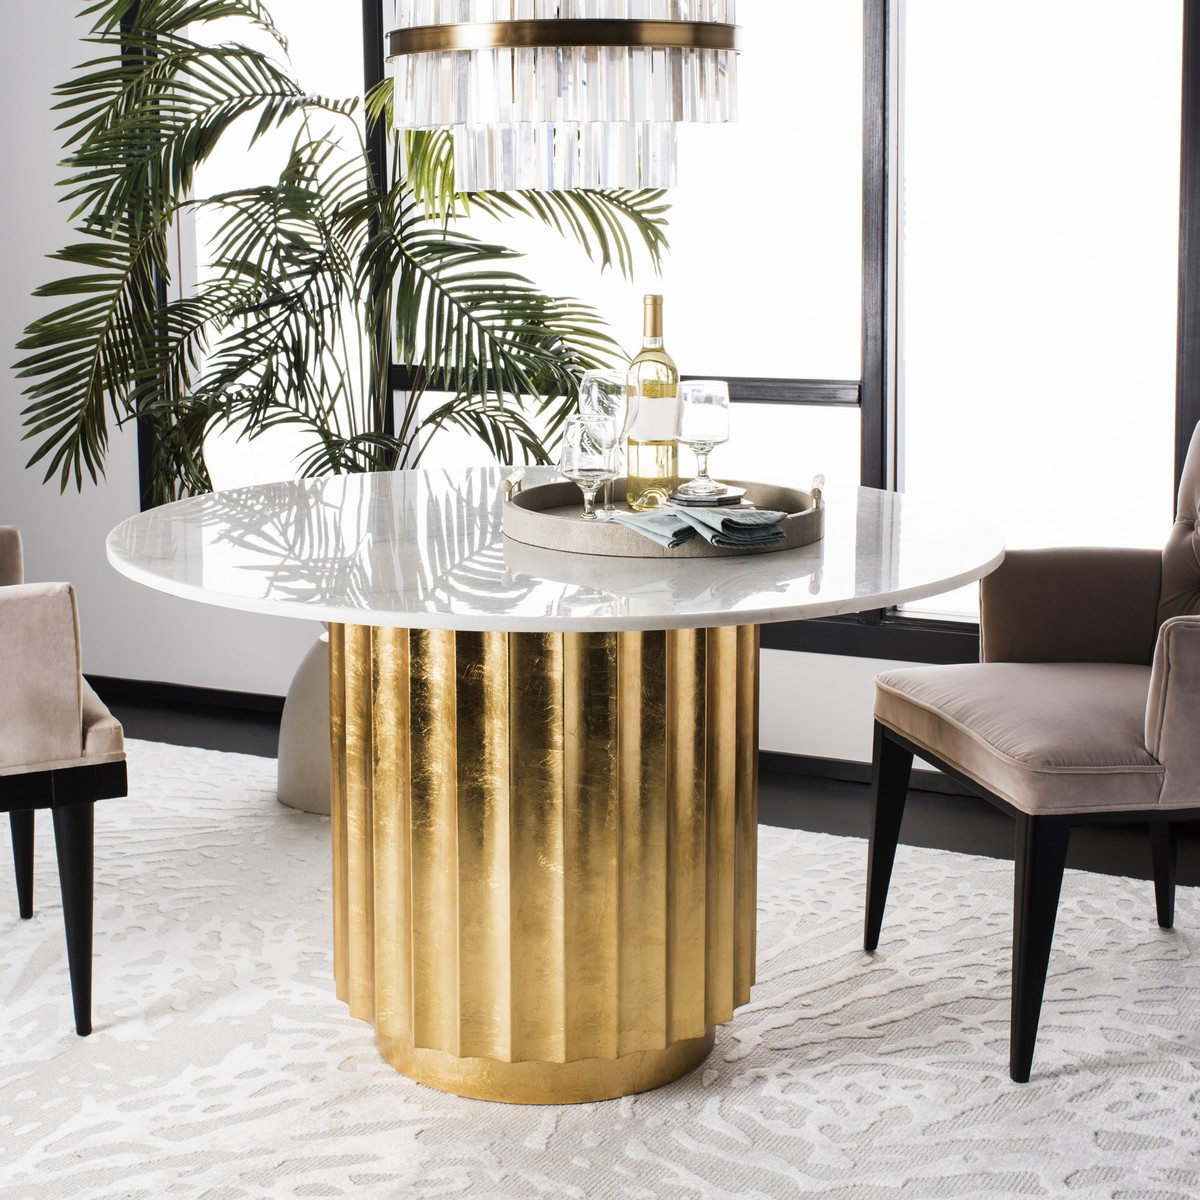 Its Bold Stature Brings Drama And Character To Any Dining Room With Carved Sculptural Base Clic Gray Marble Top A Designer Touch Gold Leaf